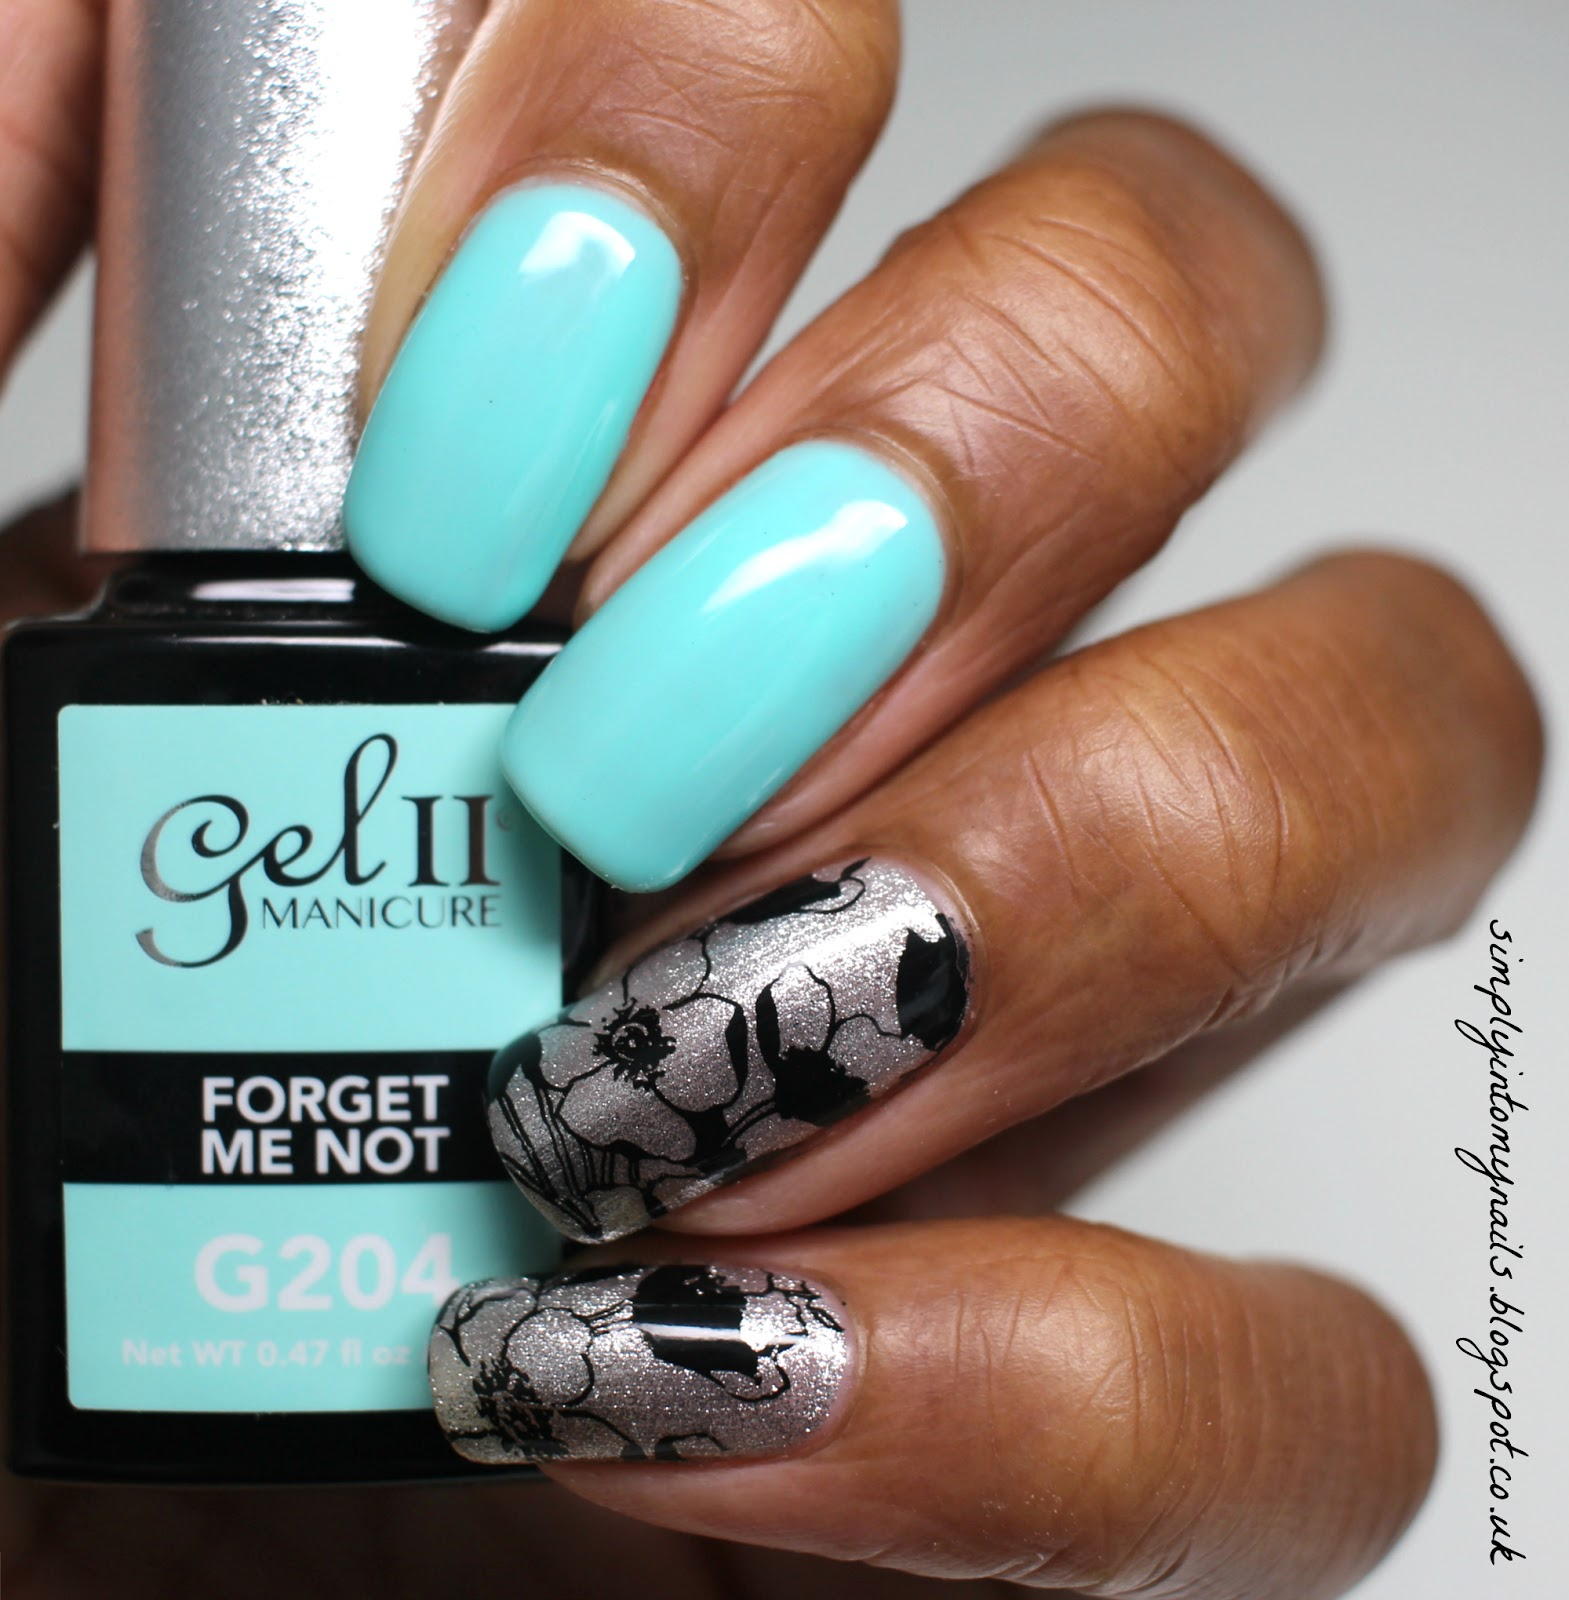 Gel Ii Nail Polish Uk